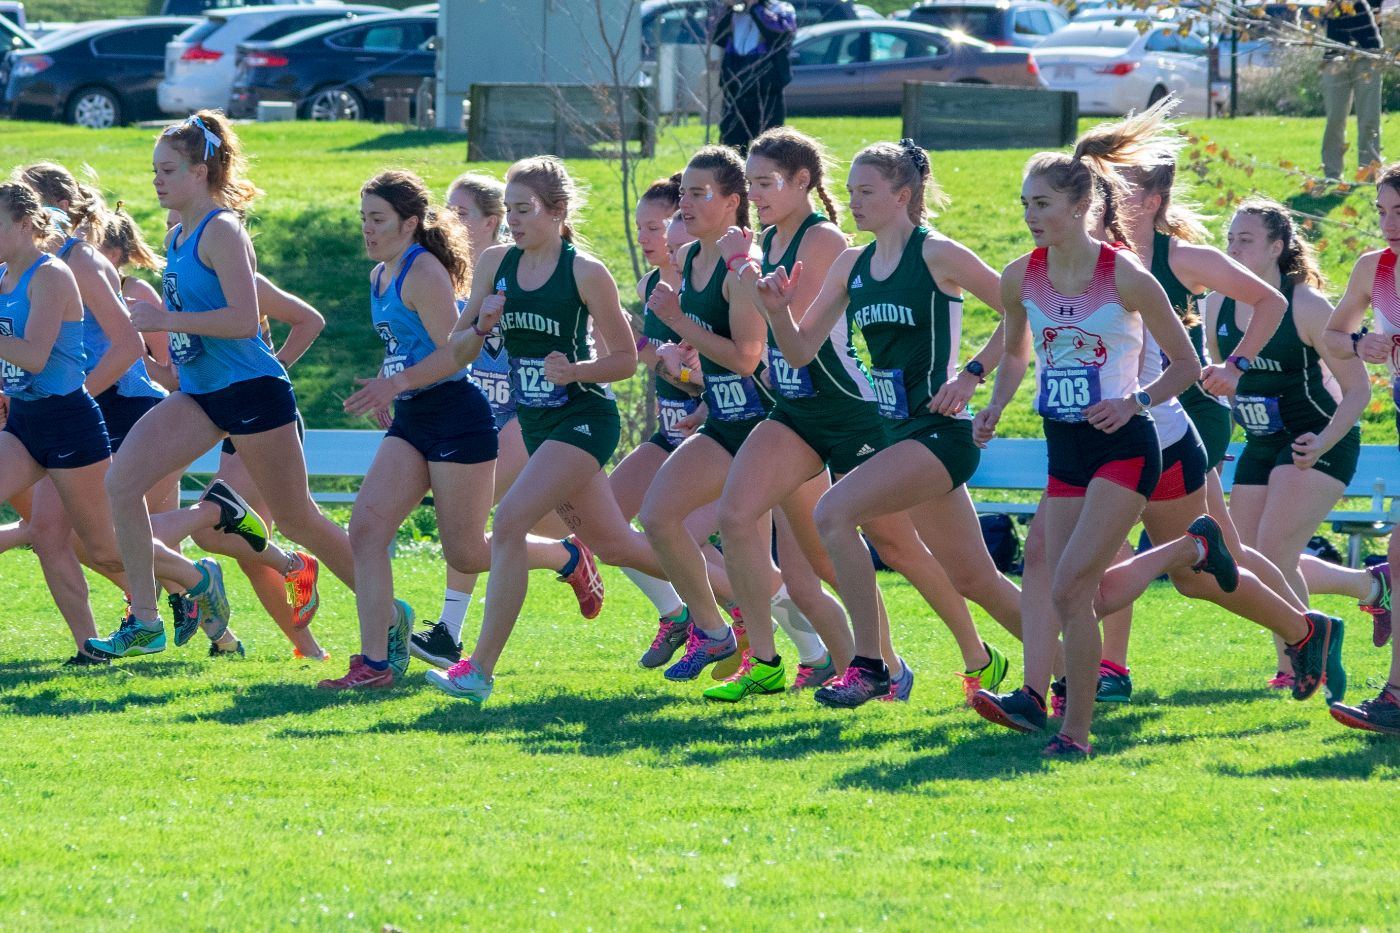 Pair of freshmen set personal records as Beavers complete NSIC Championship